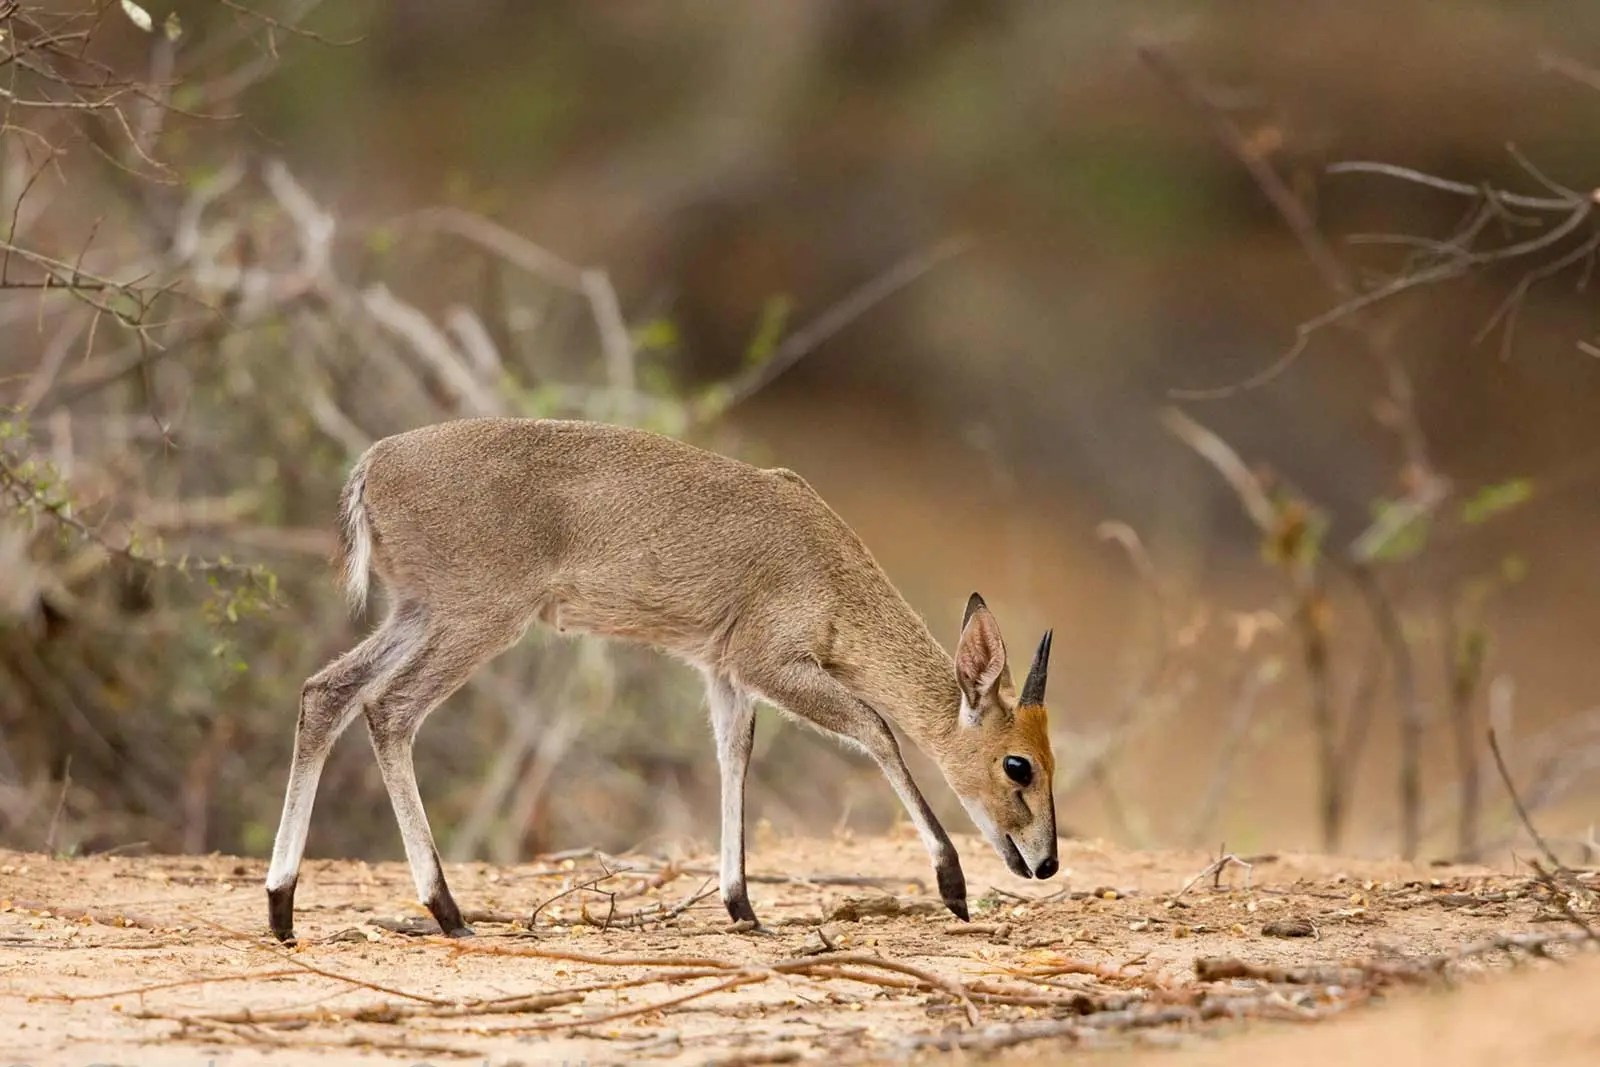 Grey duiker or common duiker Sylvicapra grimmia